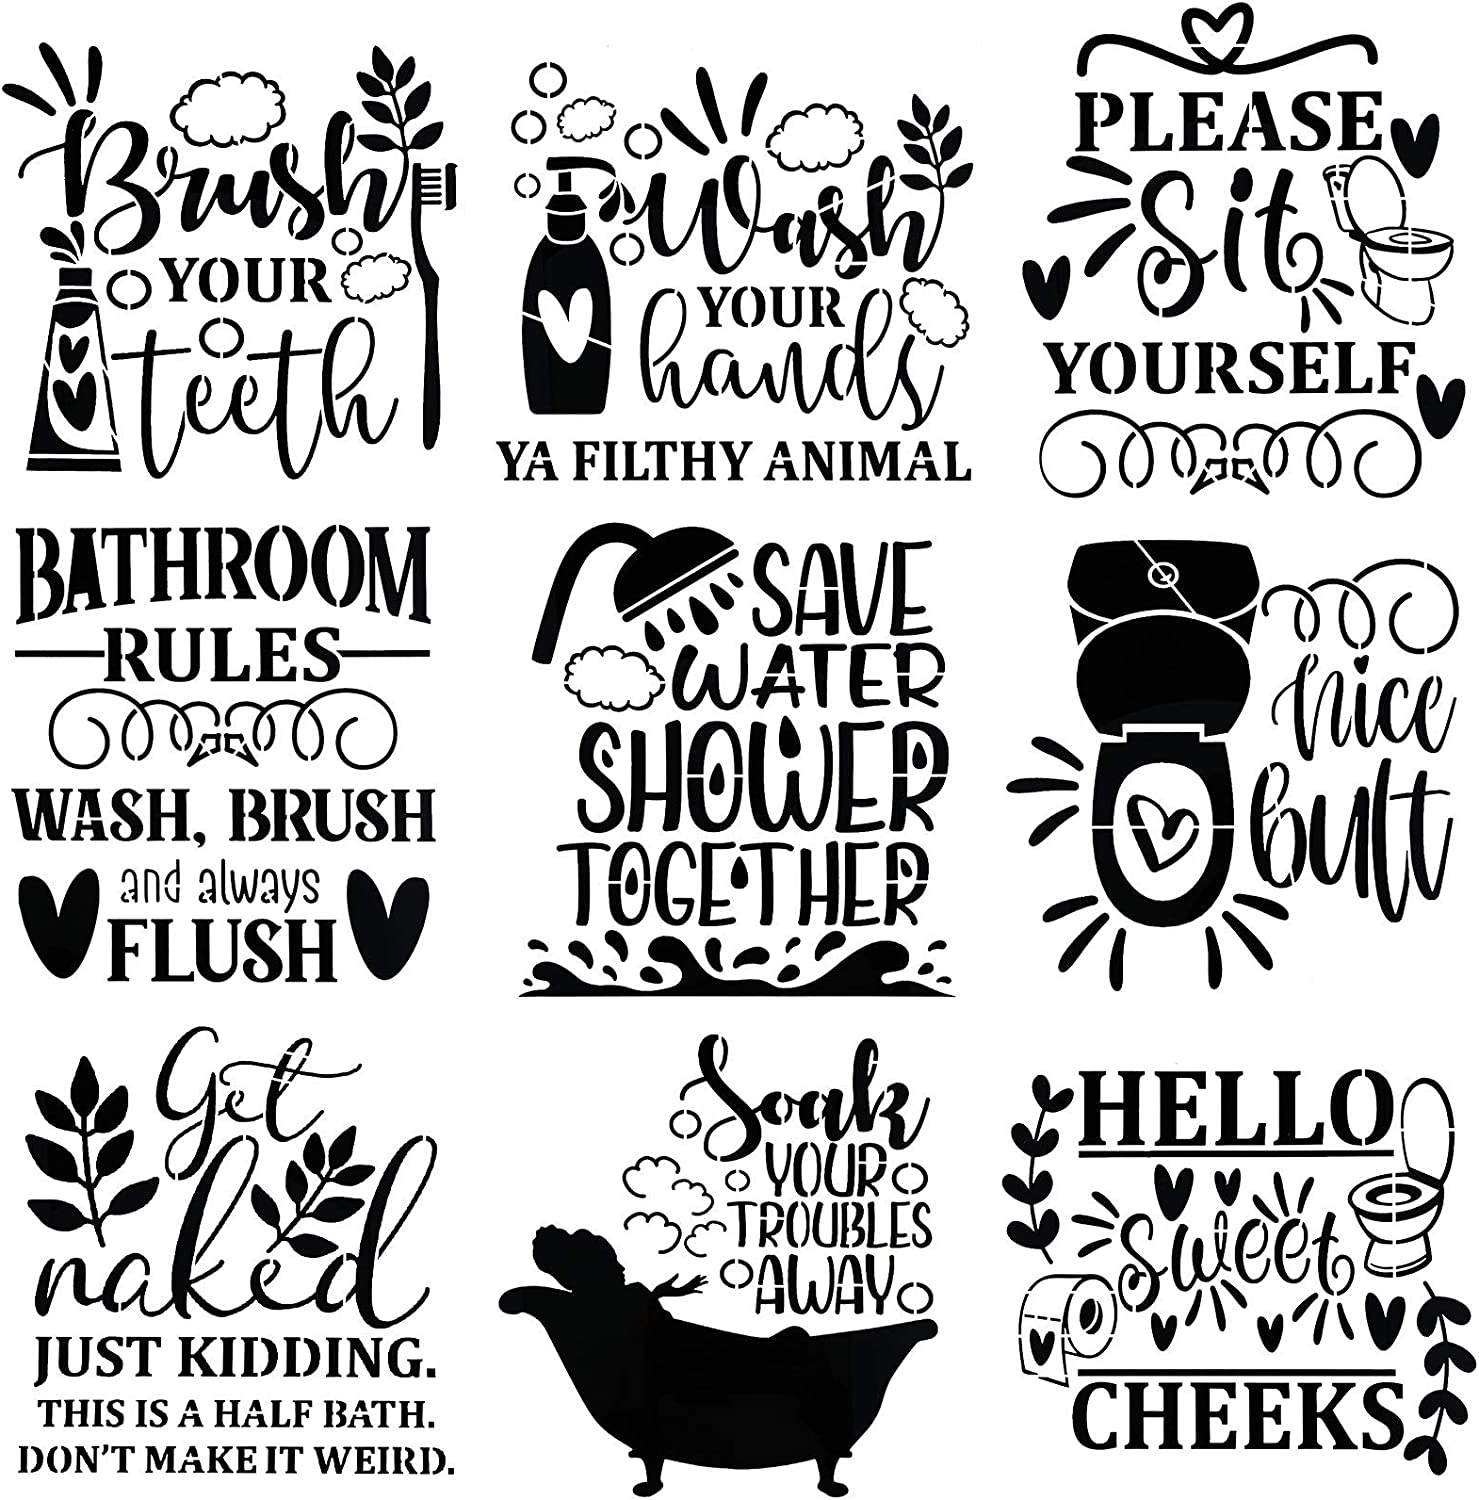 Zonon 9 Pieces Bathroom Decoration Stencils Funny Bathroom Wall Art Molds Toilet Quotes and Sayings Prints Sign Templates for Bathroom Home Wall Decor, 9 x 9 Inch